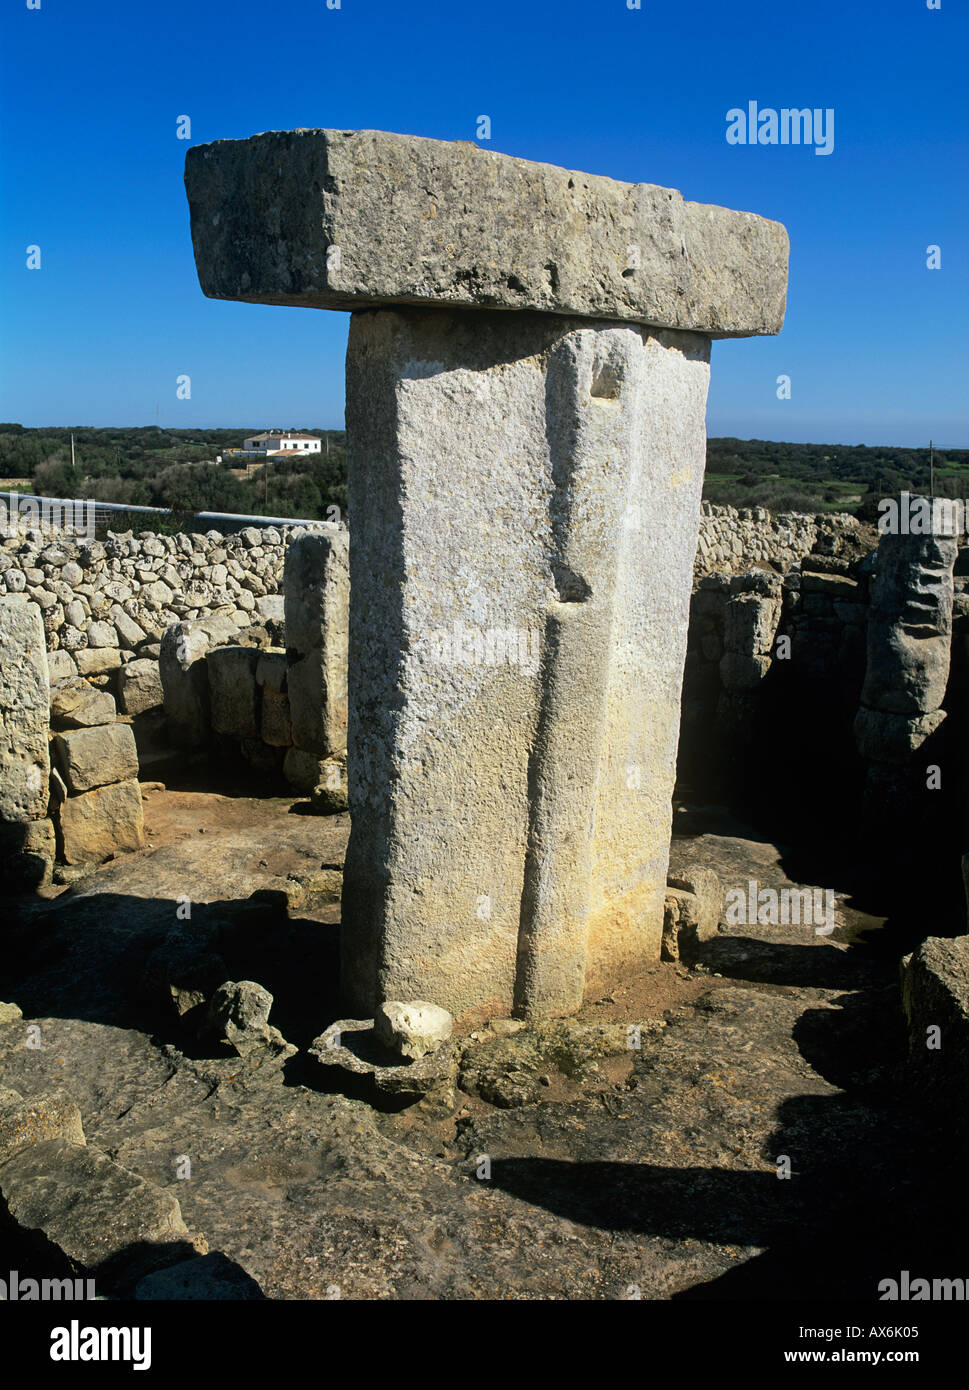 Menorca. Minorca Balearic islands.Taula, Torralba d'en Salord.near Alaior Menorca, Spain. Megalithic monument. Stock Photo